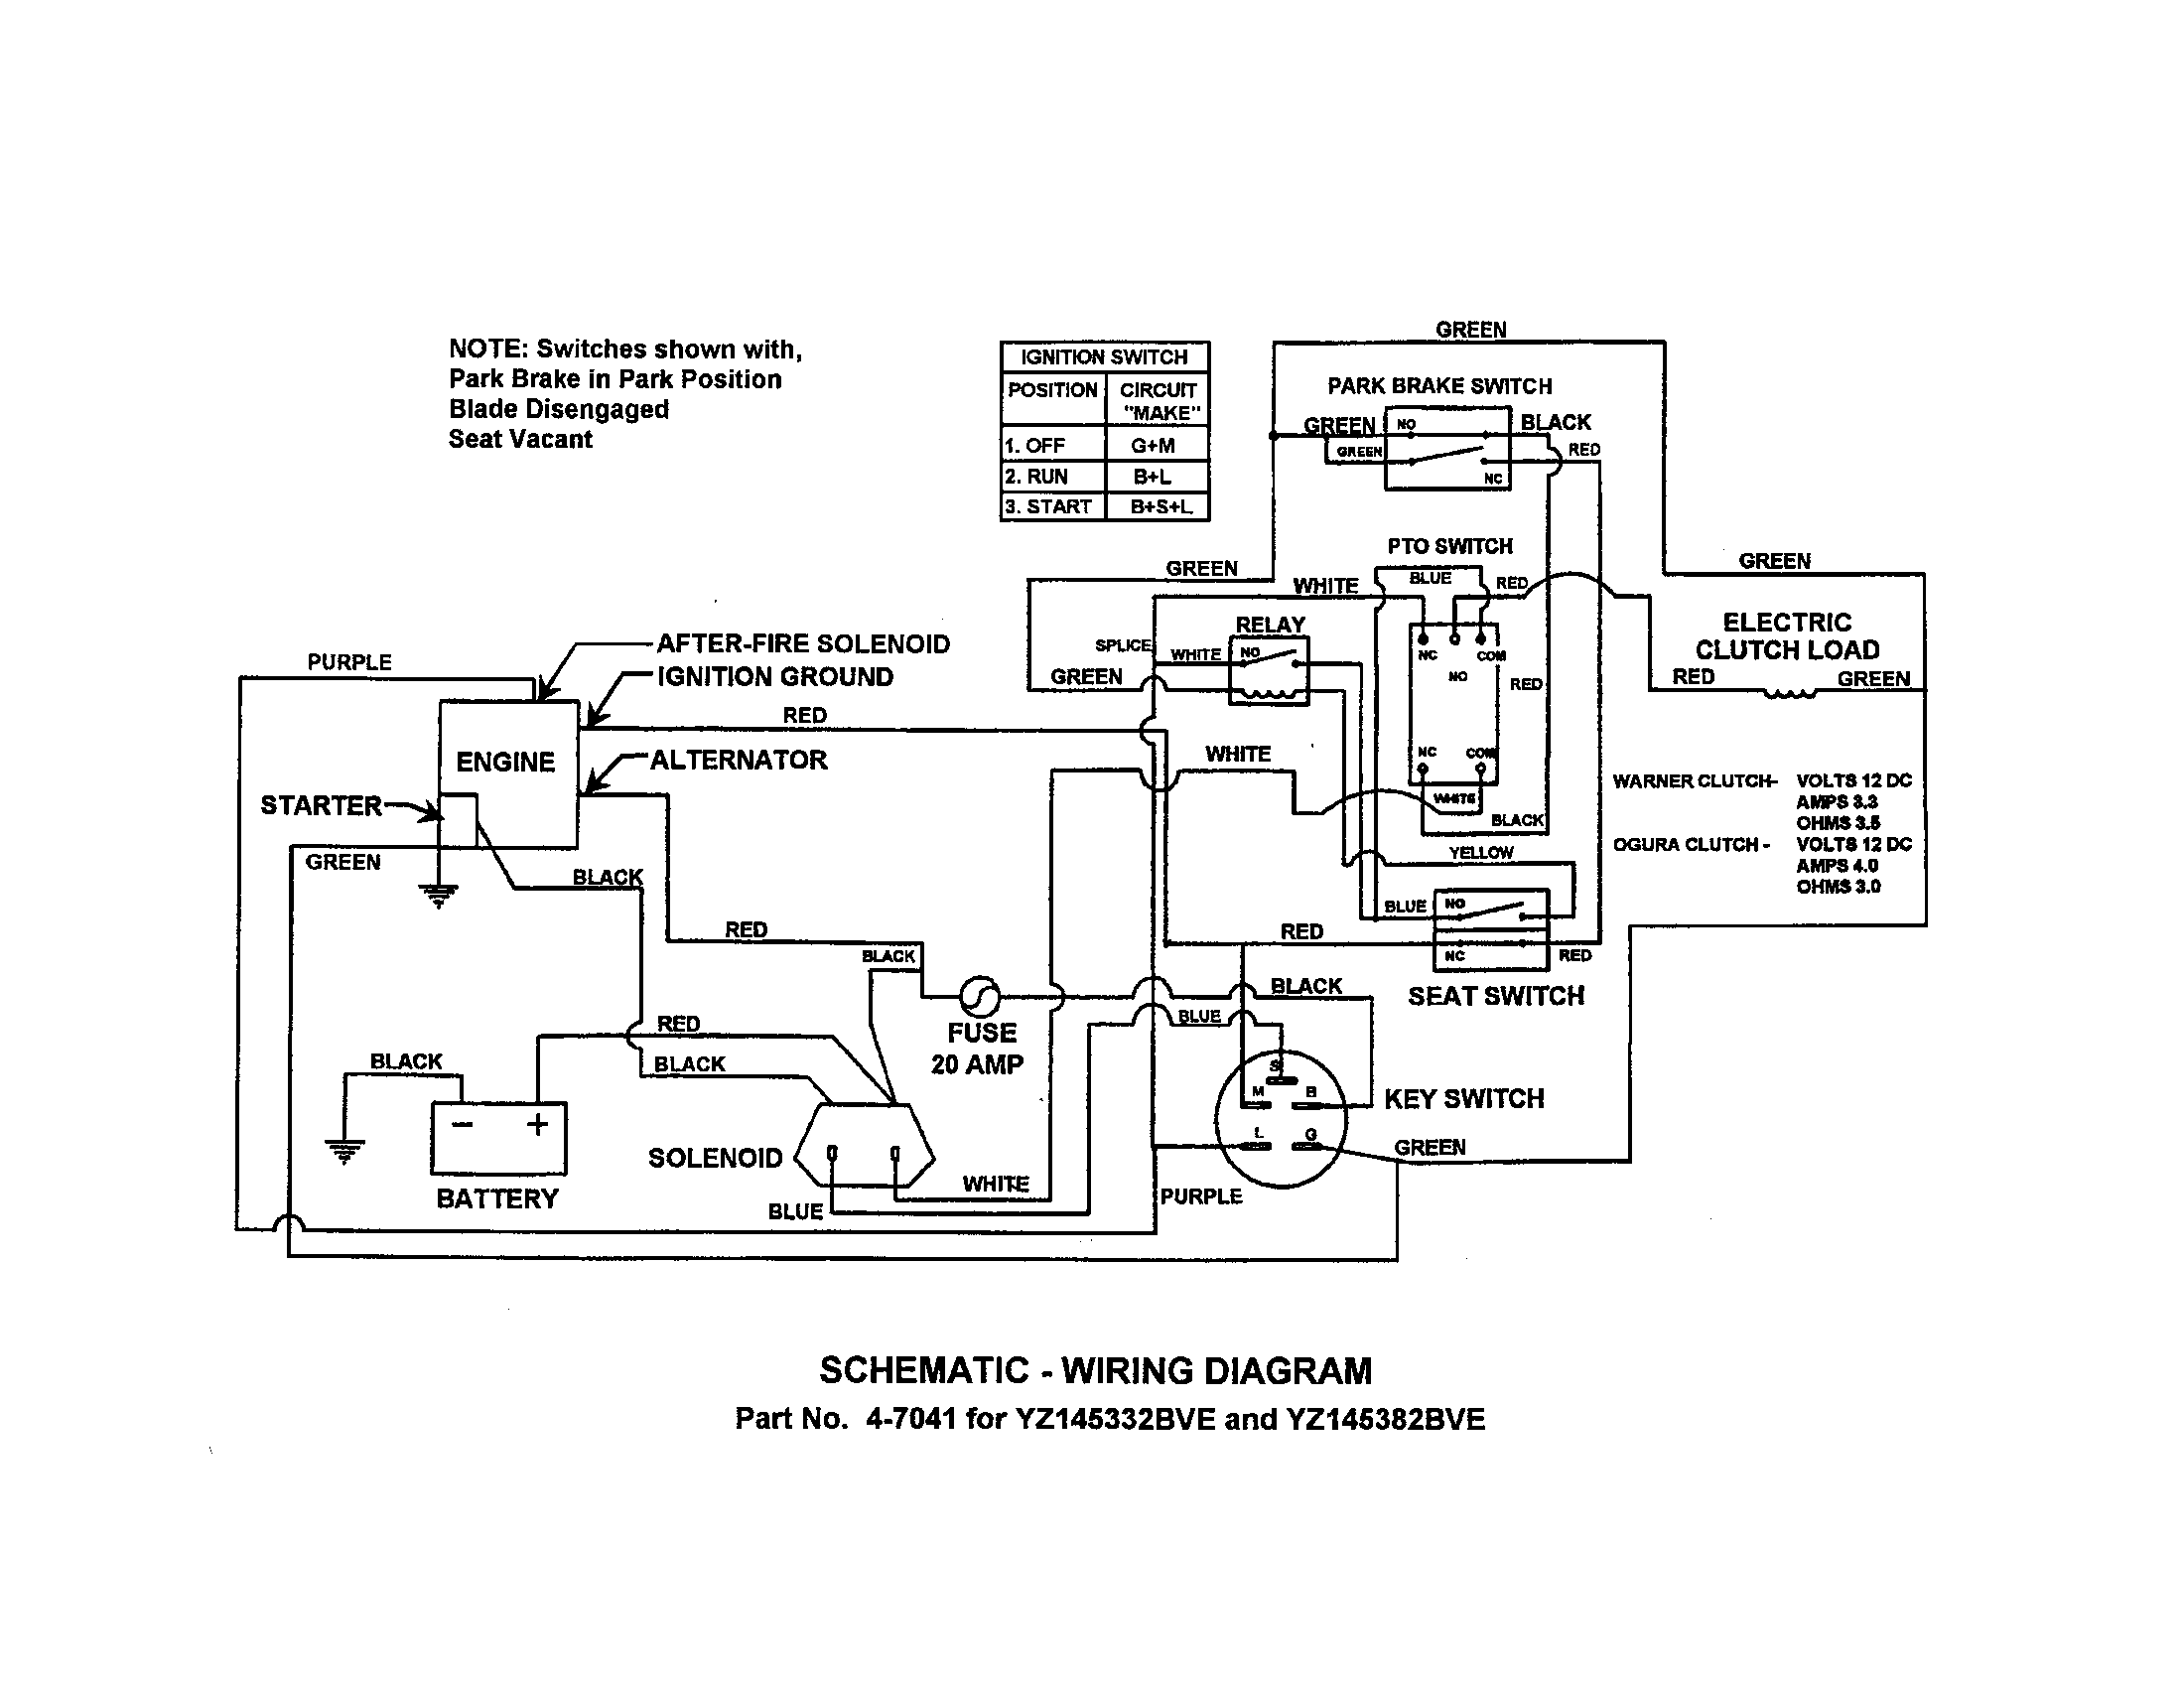 denso alternator 3 pin plug wiring diagram 1995 toyota tacoma parts nippon diagrams